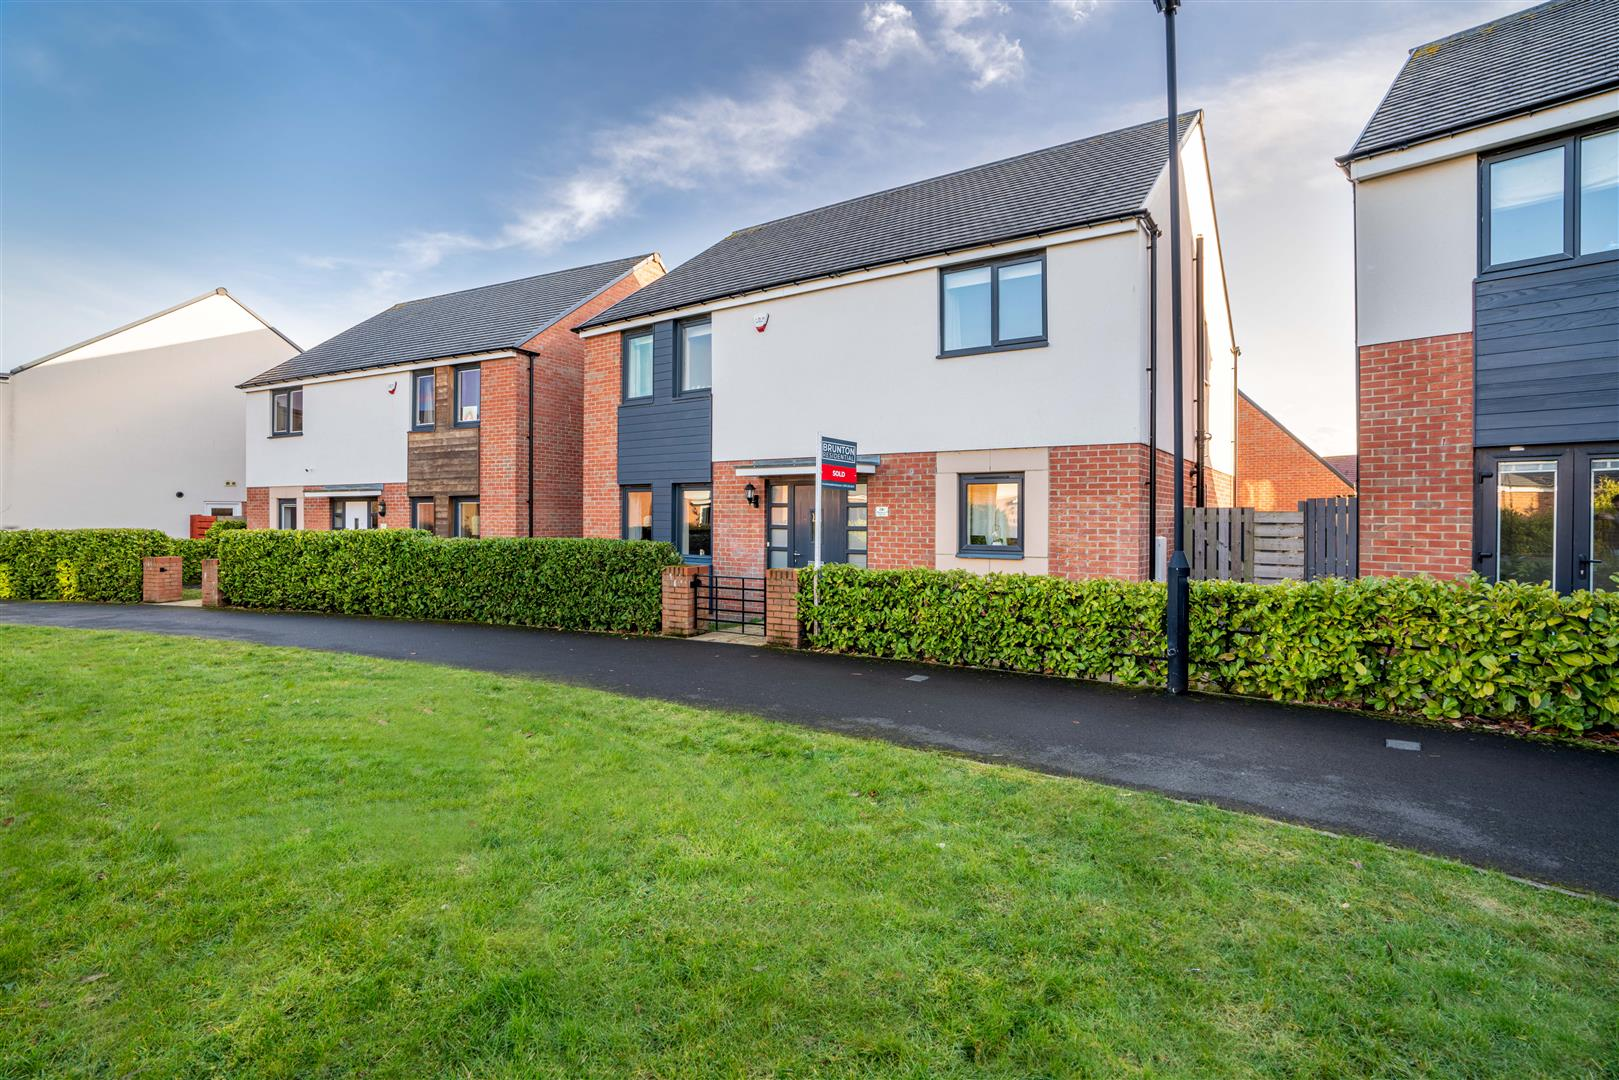 4 bed detached house for sale in Great Park, NE13 9AW, NE13